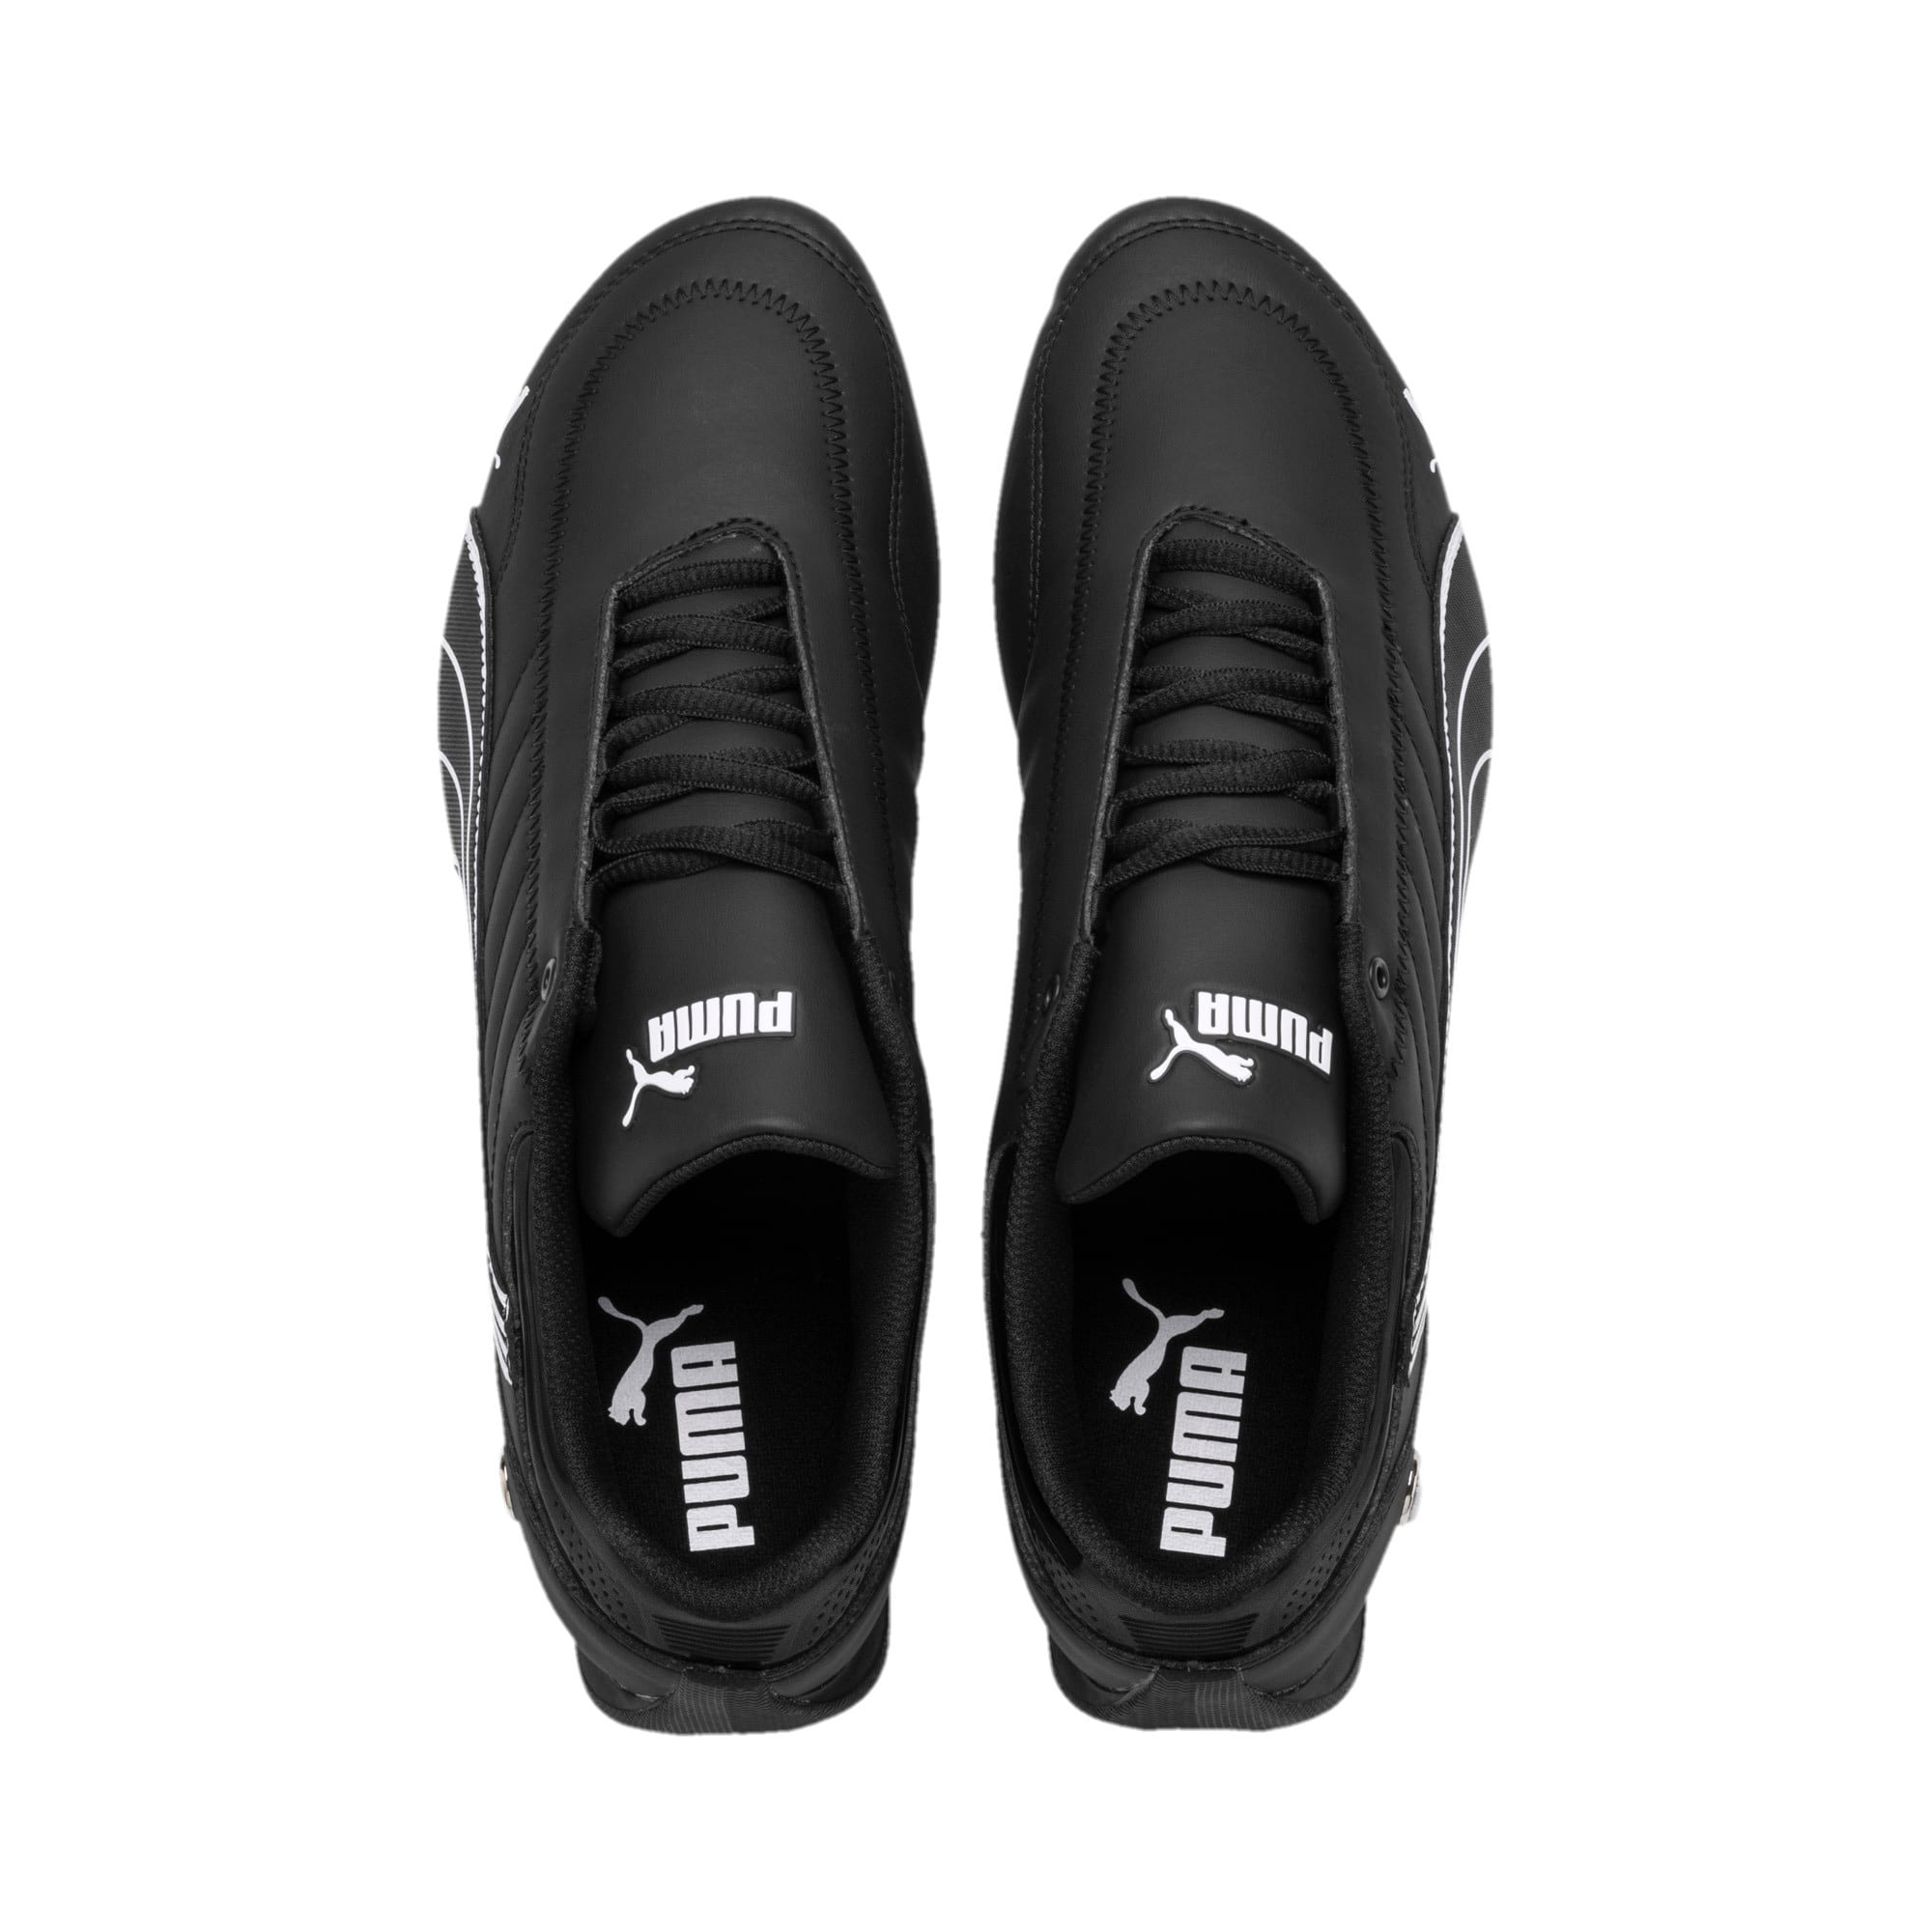 Thumbnail 8 of BMW M Motorsport Future Kart Cat Trainers, Puma Black-Puma White, medium-IND